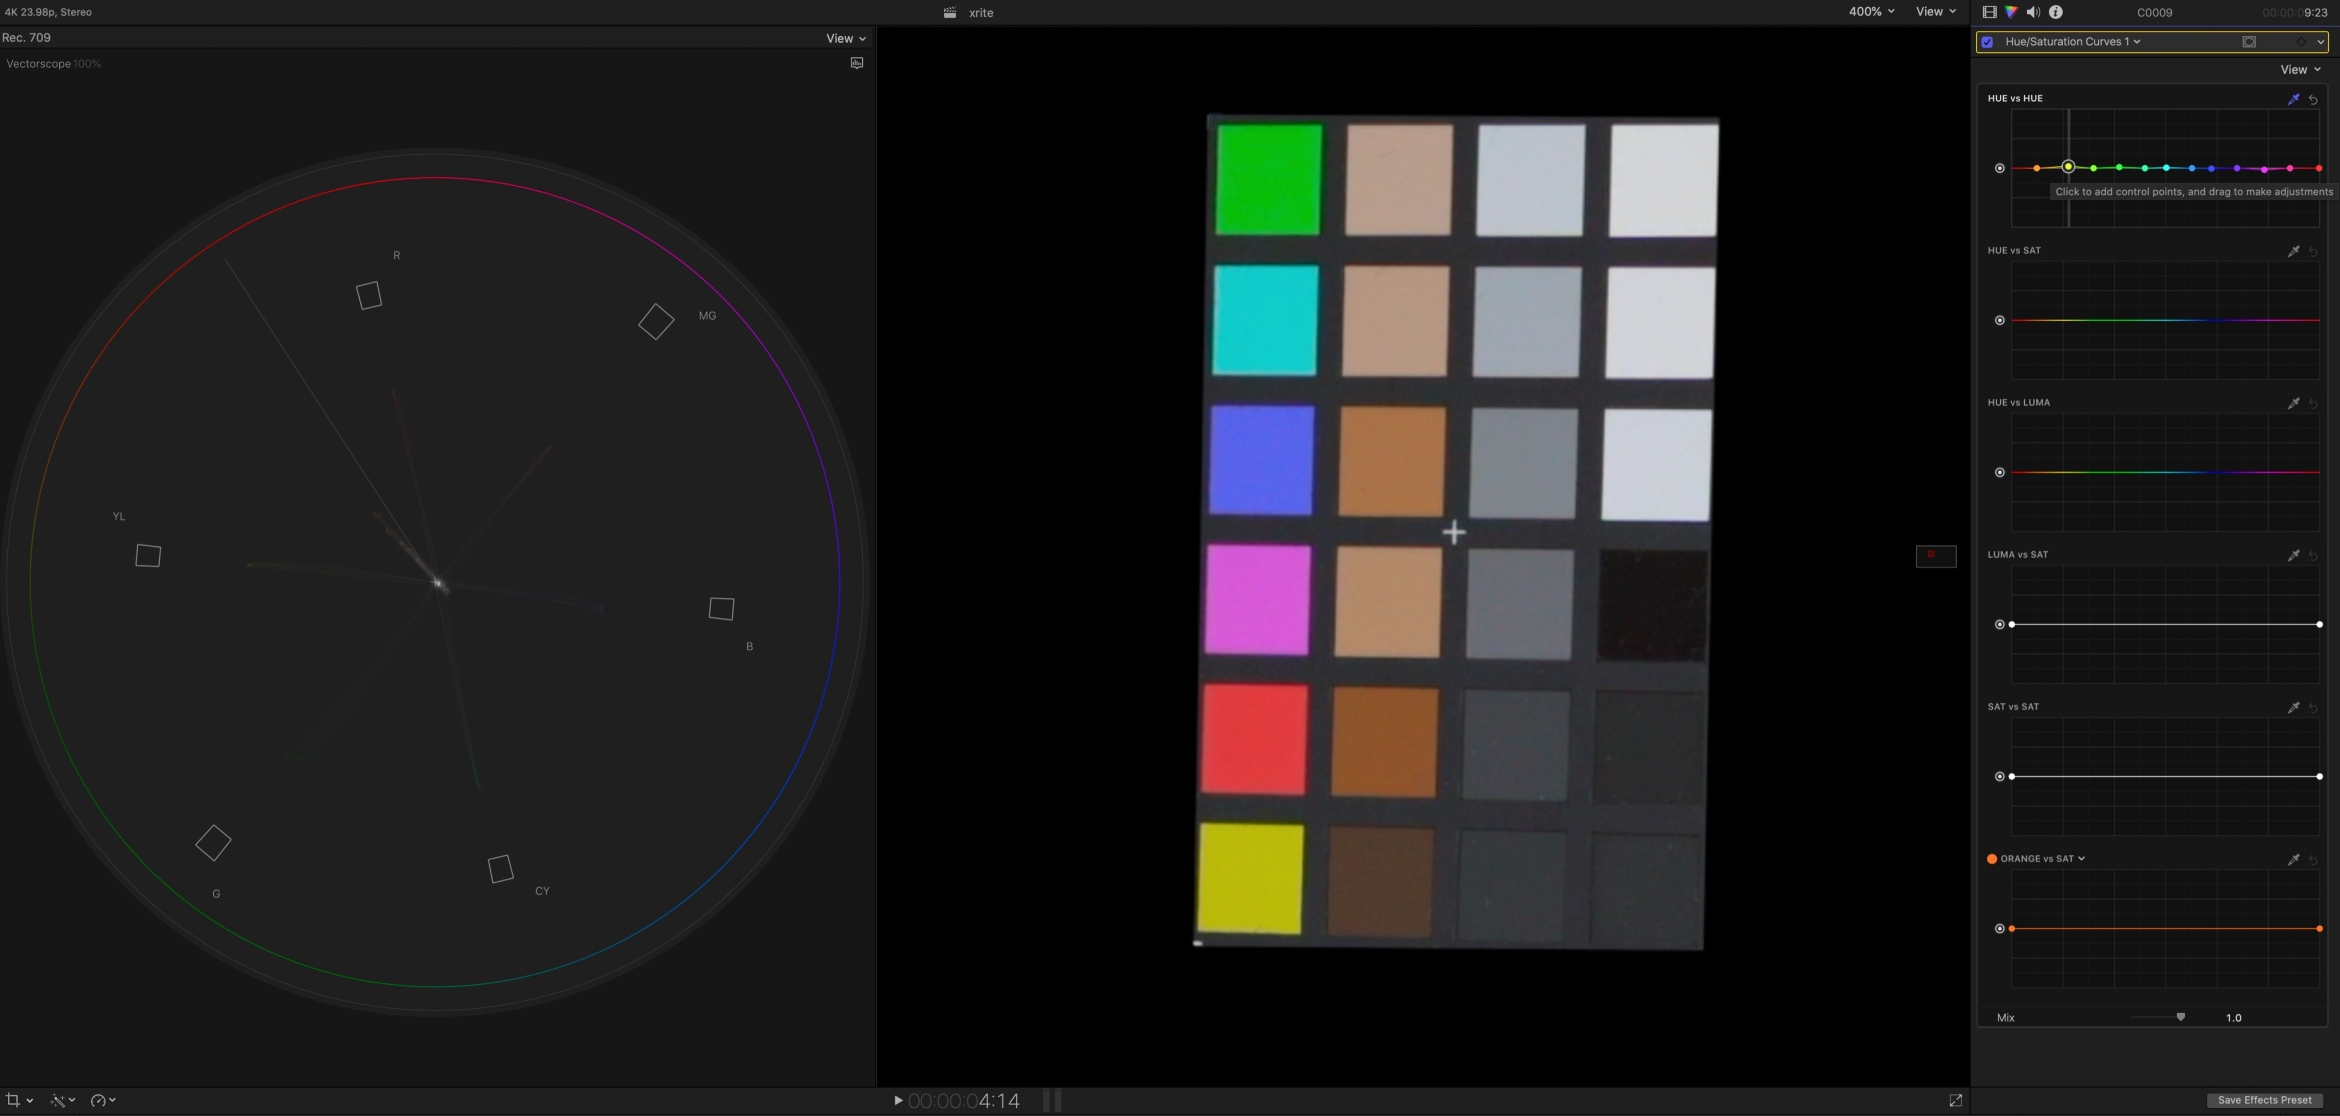 12. Holding down the shift key, grab each of the hues and drag it up and down until each one is pointed directly at the squares on the vectorscope.